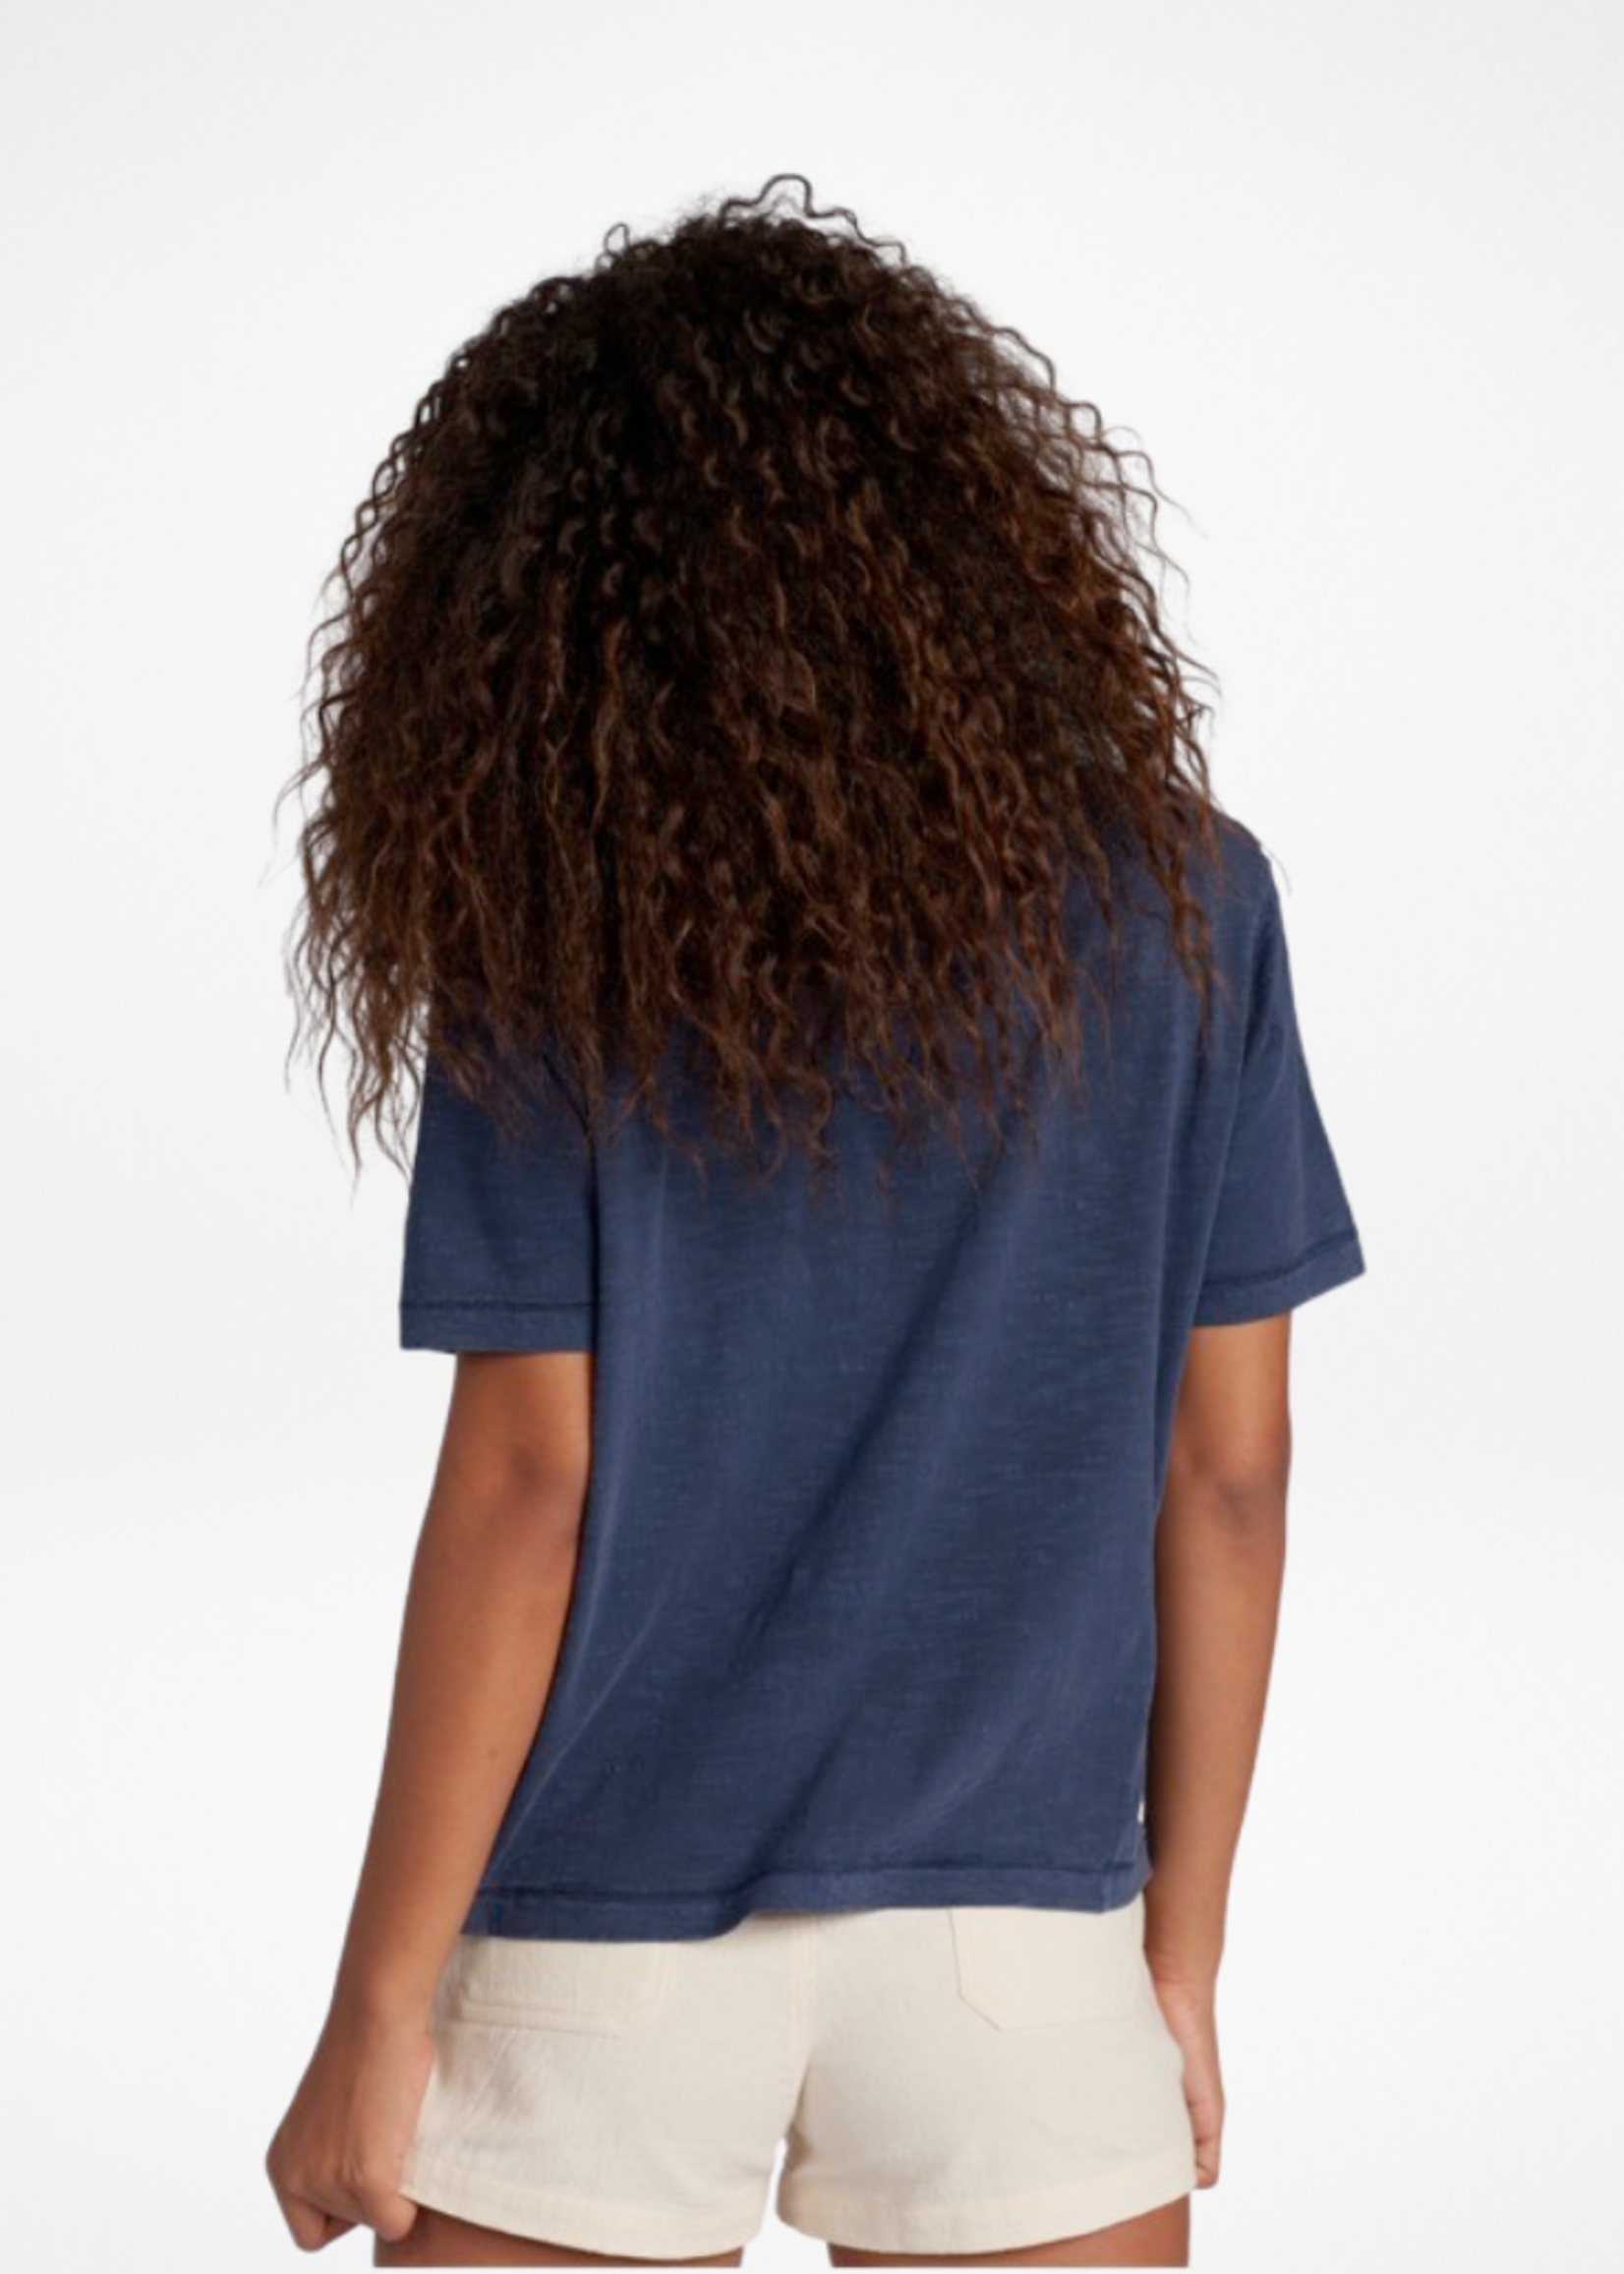 21 ROXY BOYFRIEND POCKET TEE